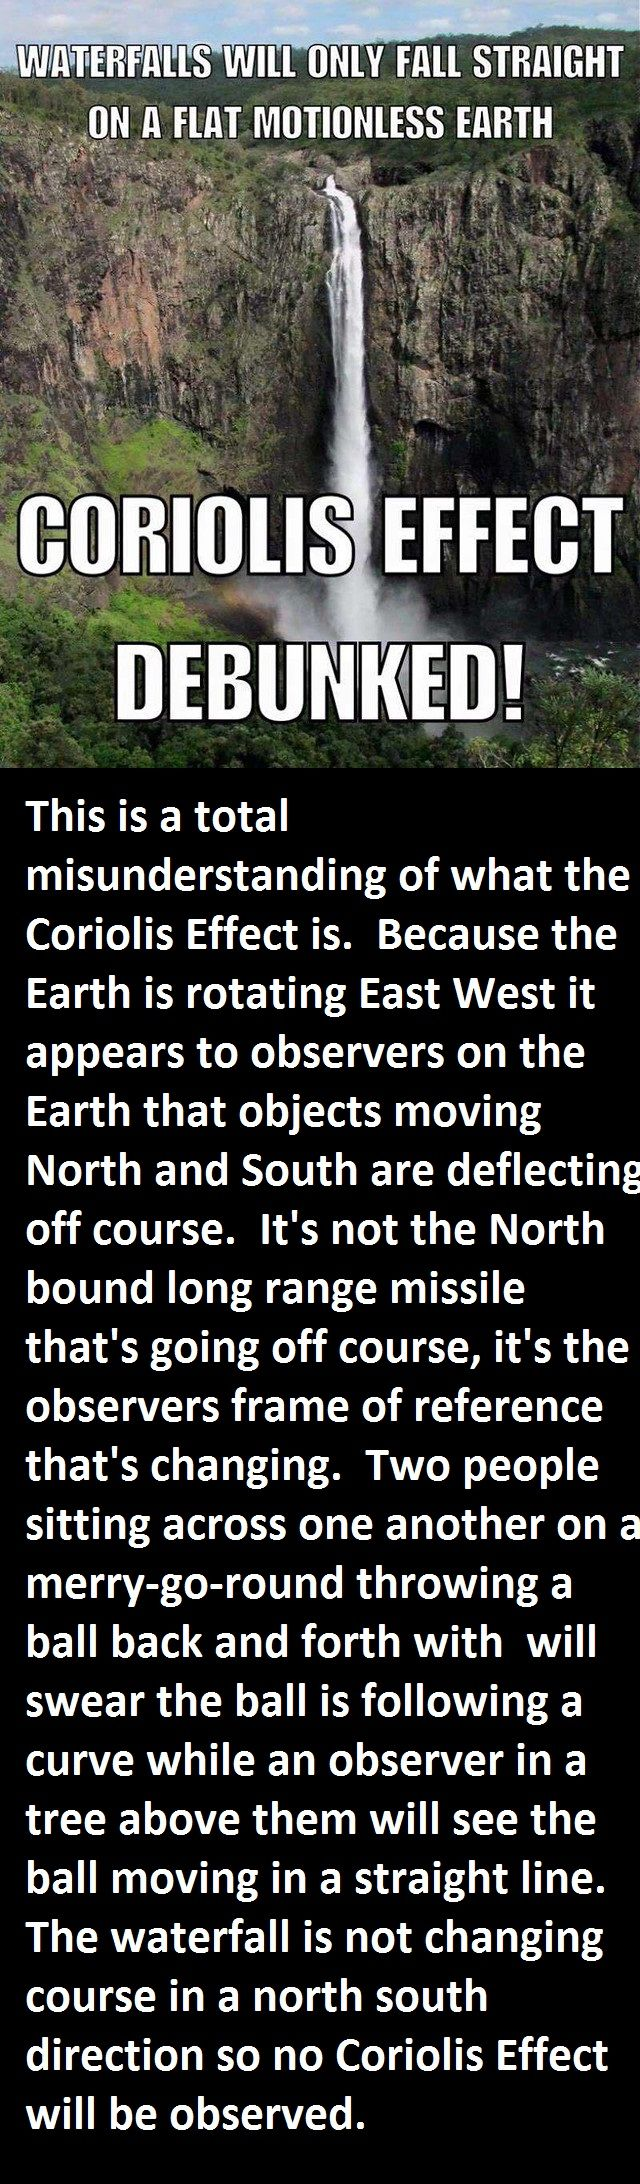 Flat Earth misunderstanding of what the Coriolis effect is